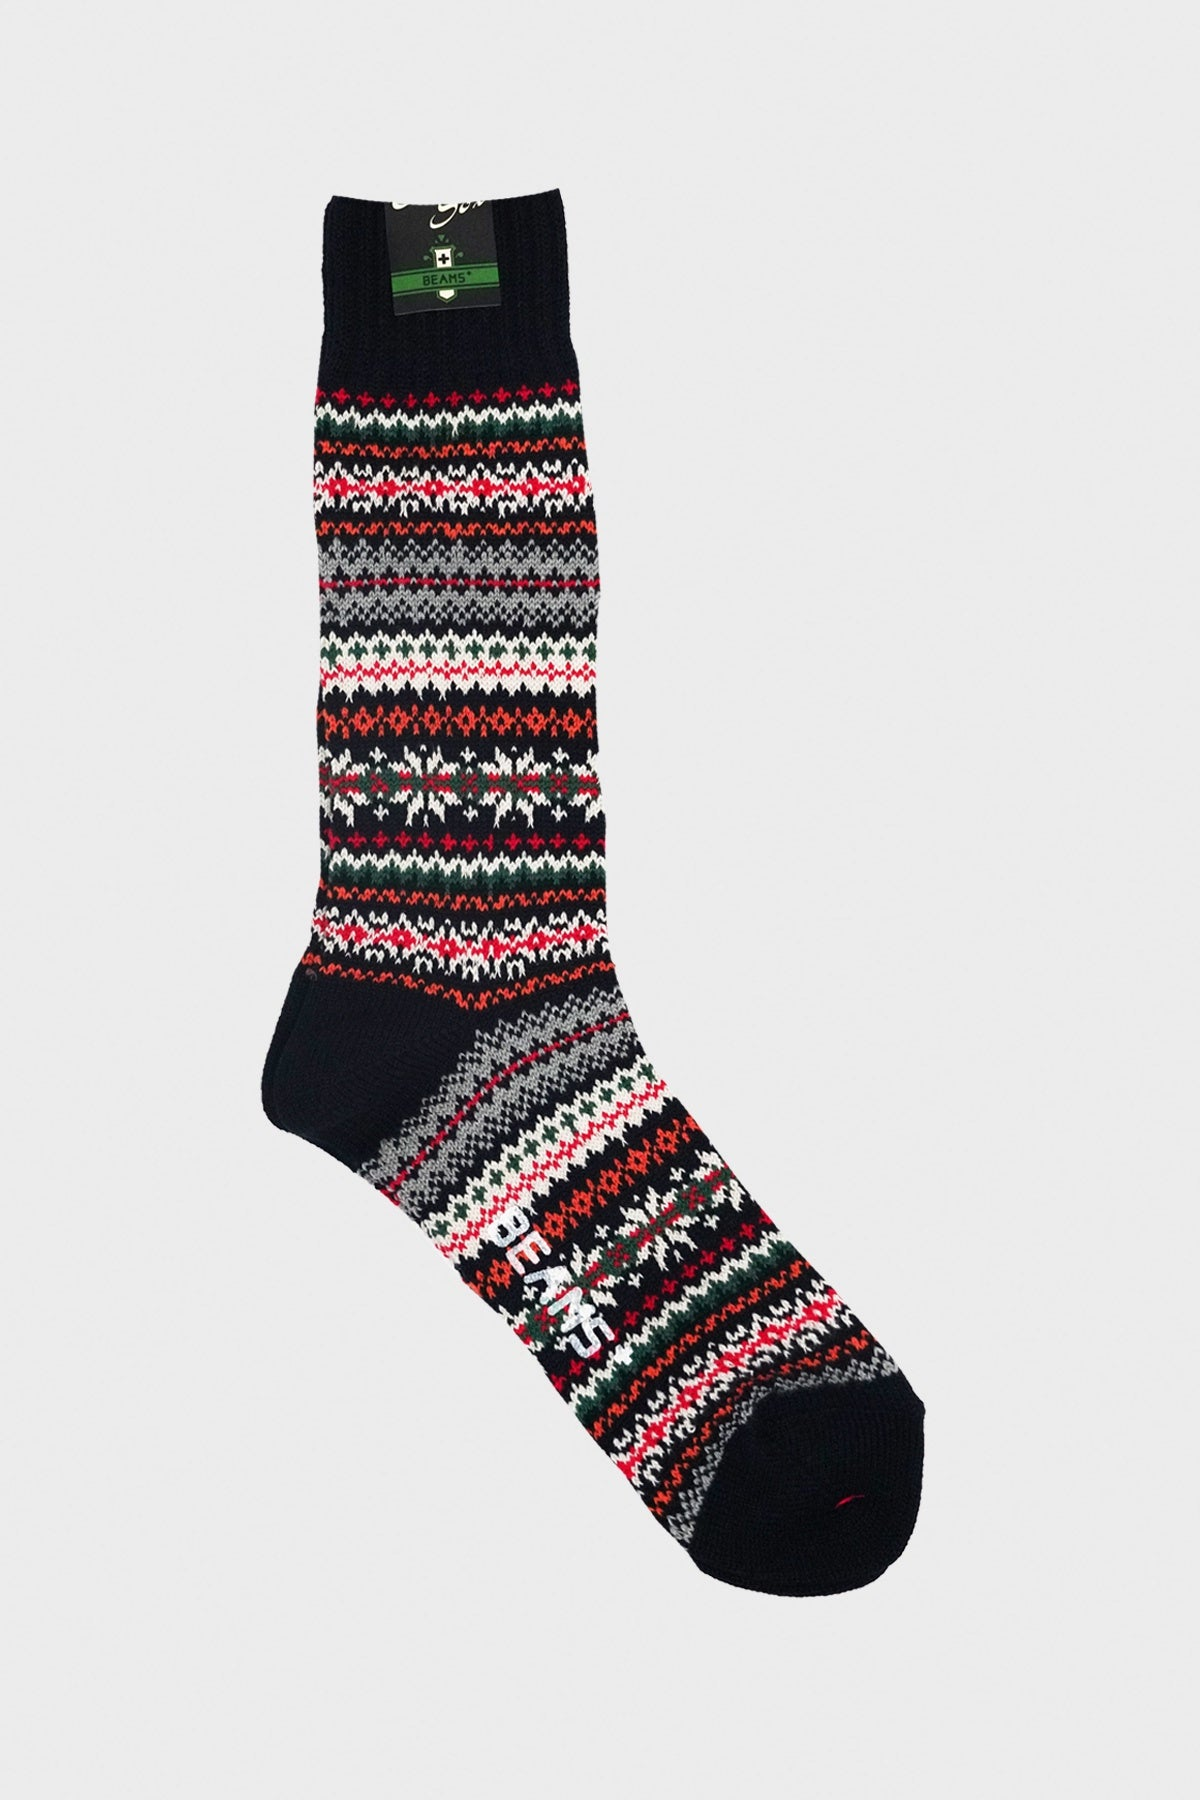 Beams Plus - Outdoor Socks - Navy - Canoe Club